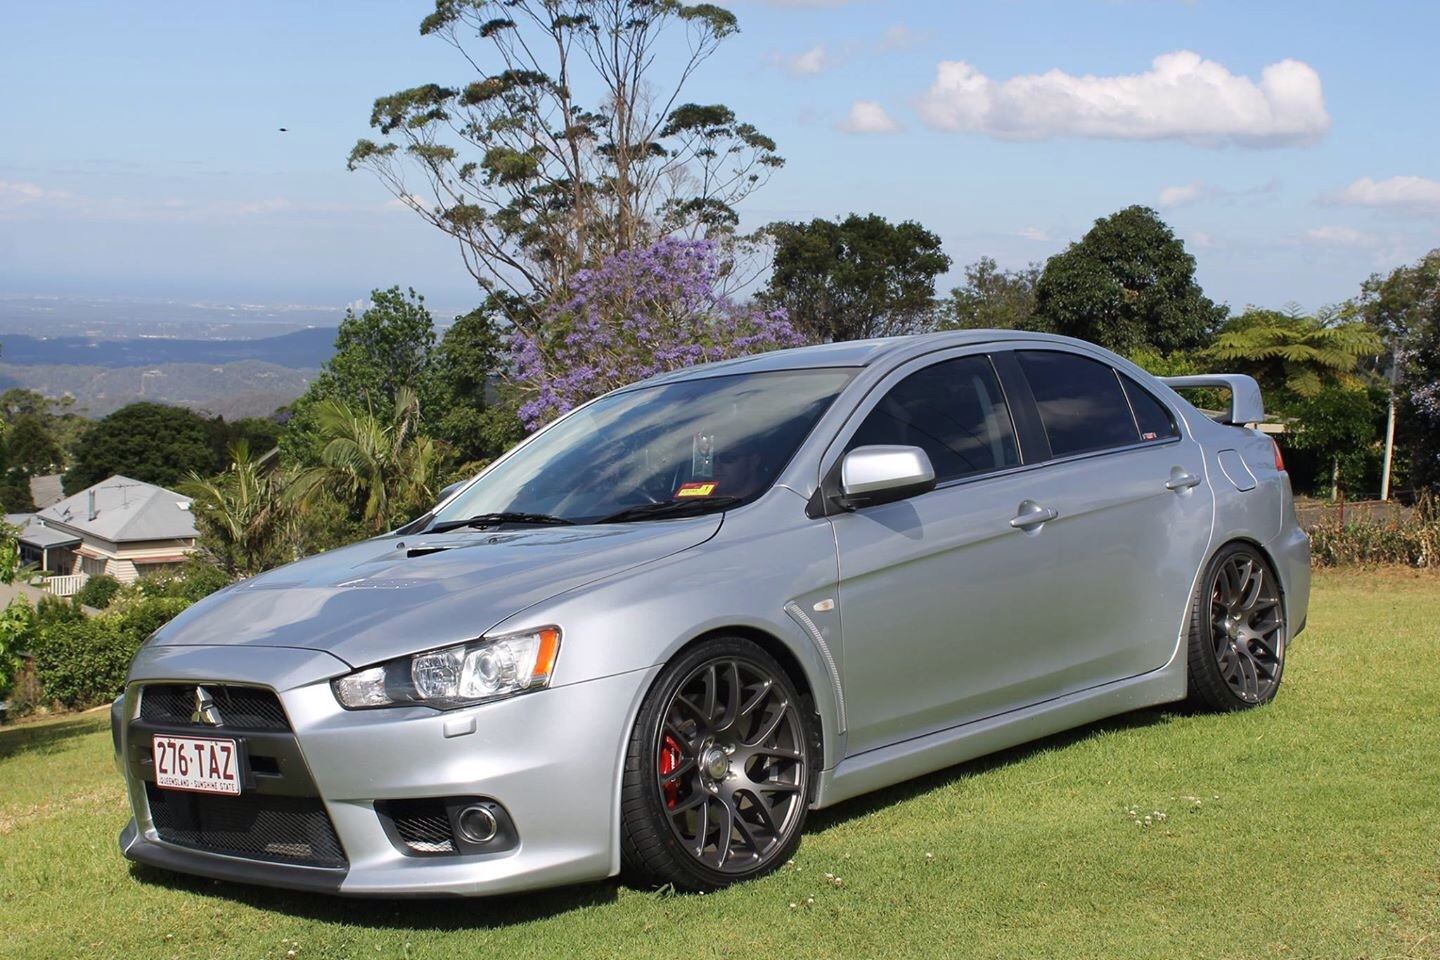 2008 mitsubishi lancer evolution mr cj for sale qld brisbane north. Black Bedroom Furniture Sets. Home Design Ideas